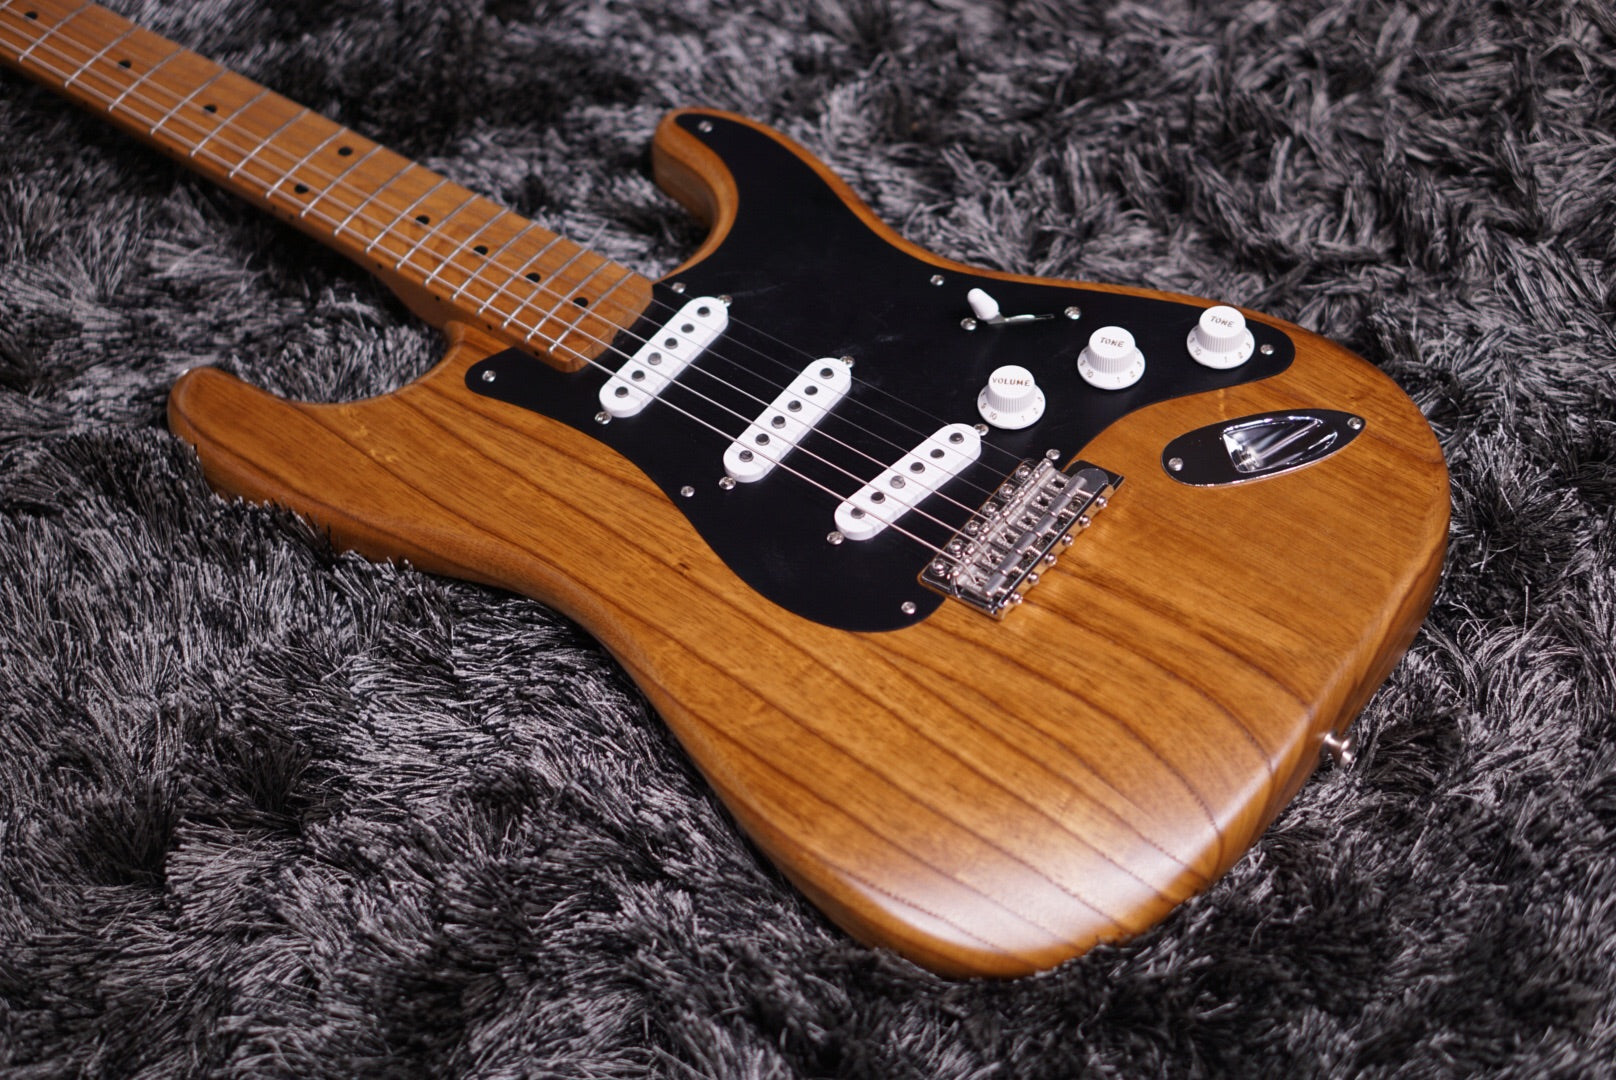 Fender Limited edition American vintage 56 stratocaster Roasted ash